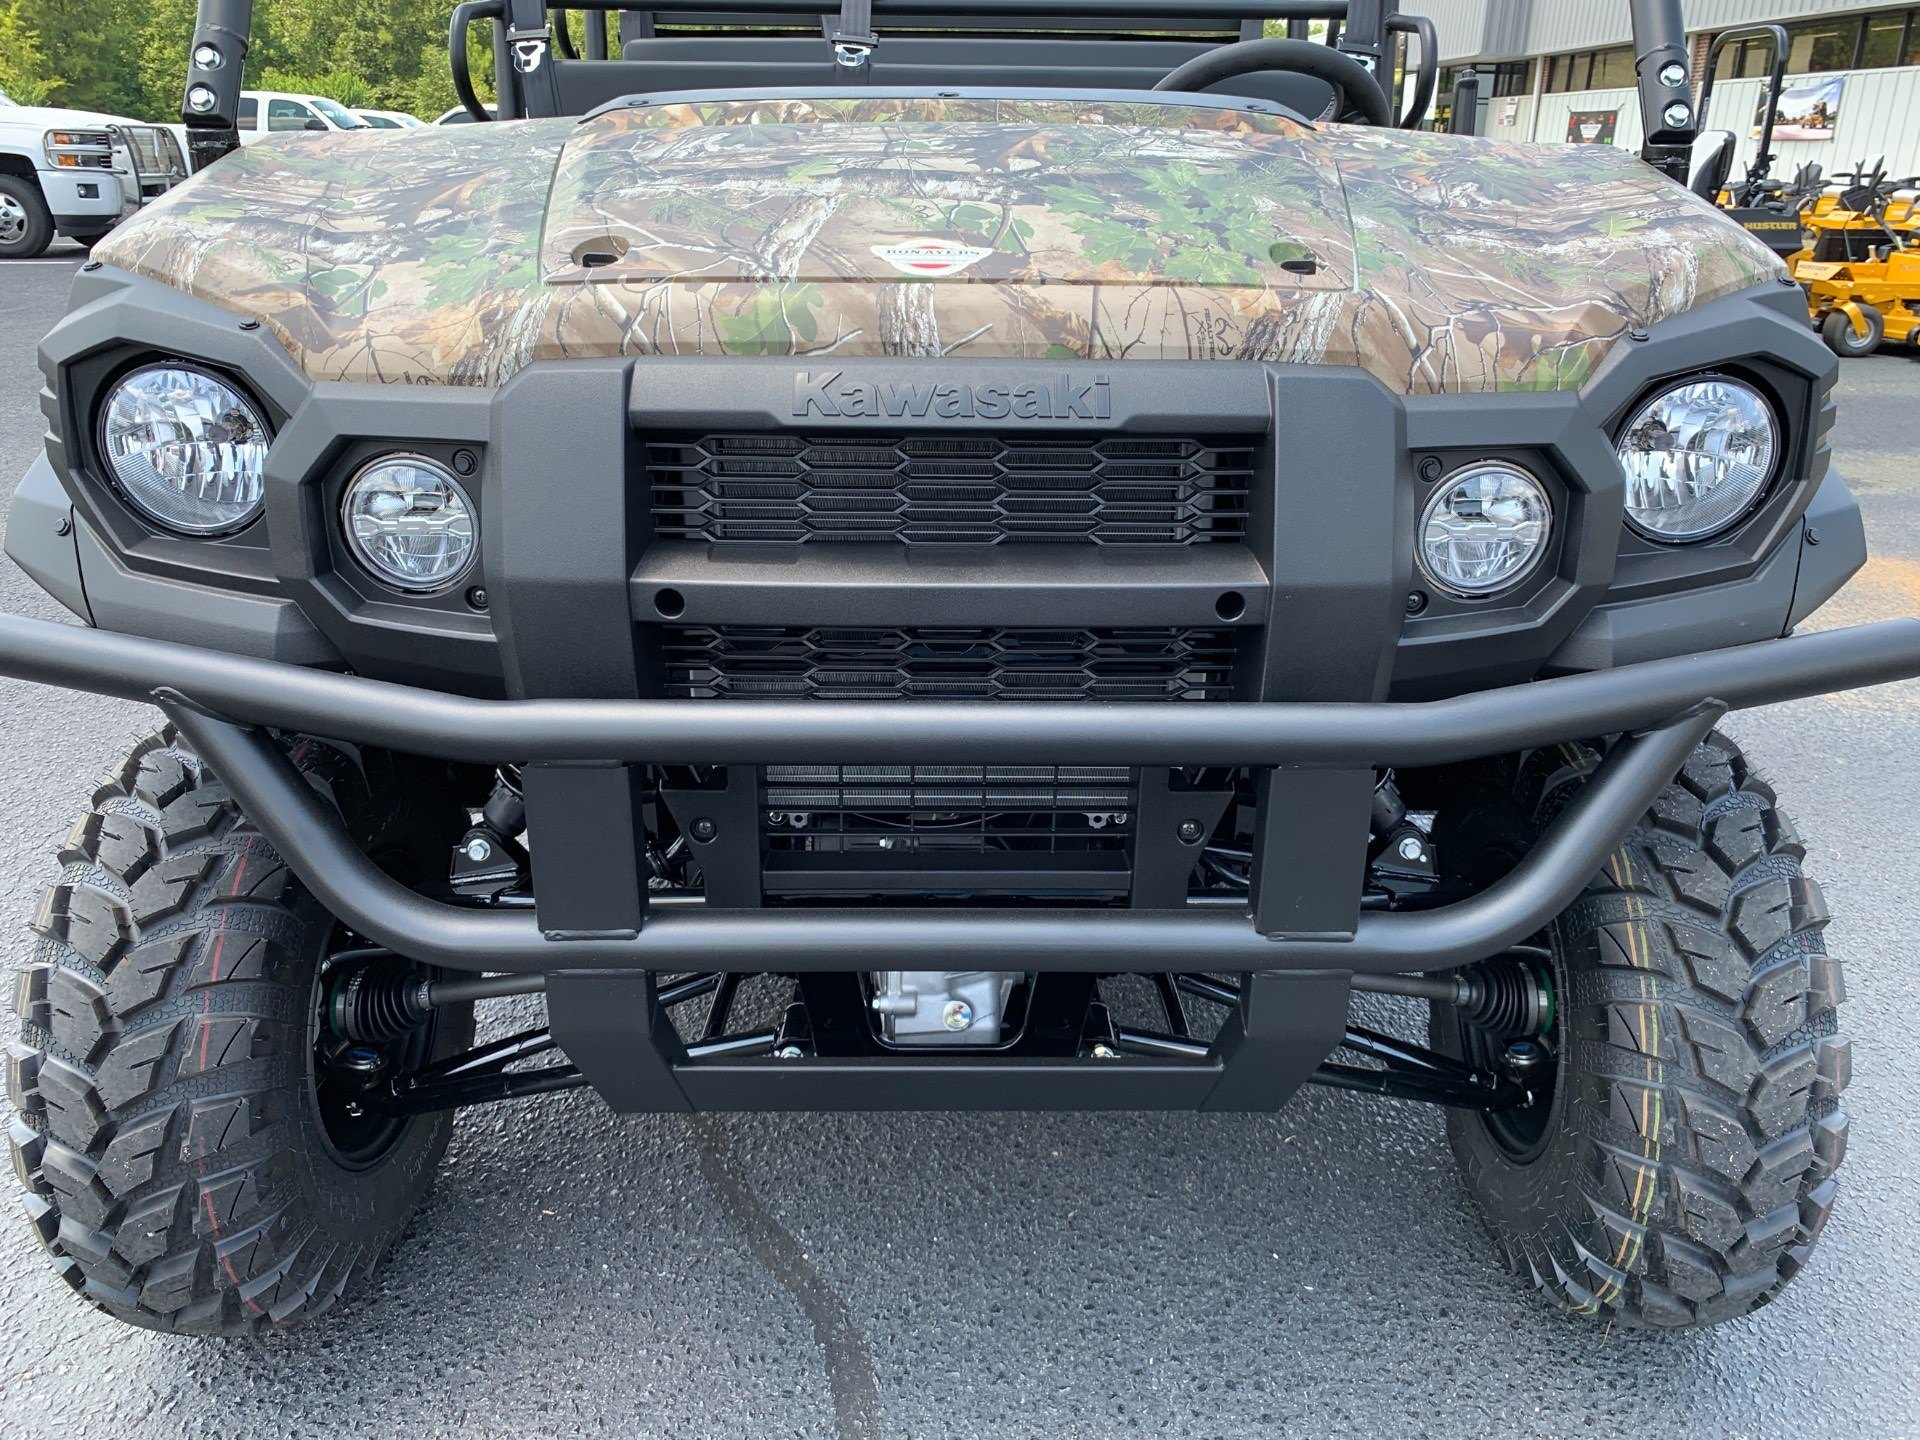 2020 Kawasaki Mule PRO-FXT EPS Camo in Greenville, North Carolina - Photo 11